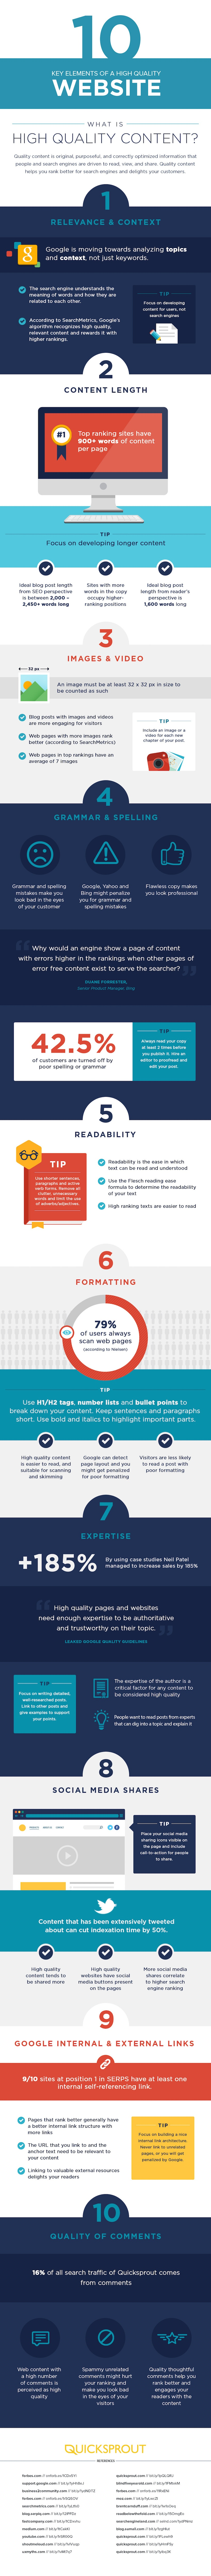 10_Key_elements_of_high_quality_website.png